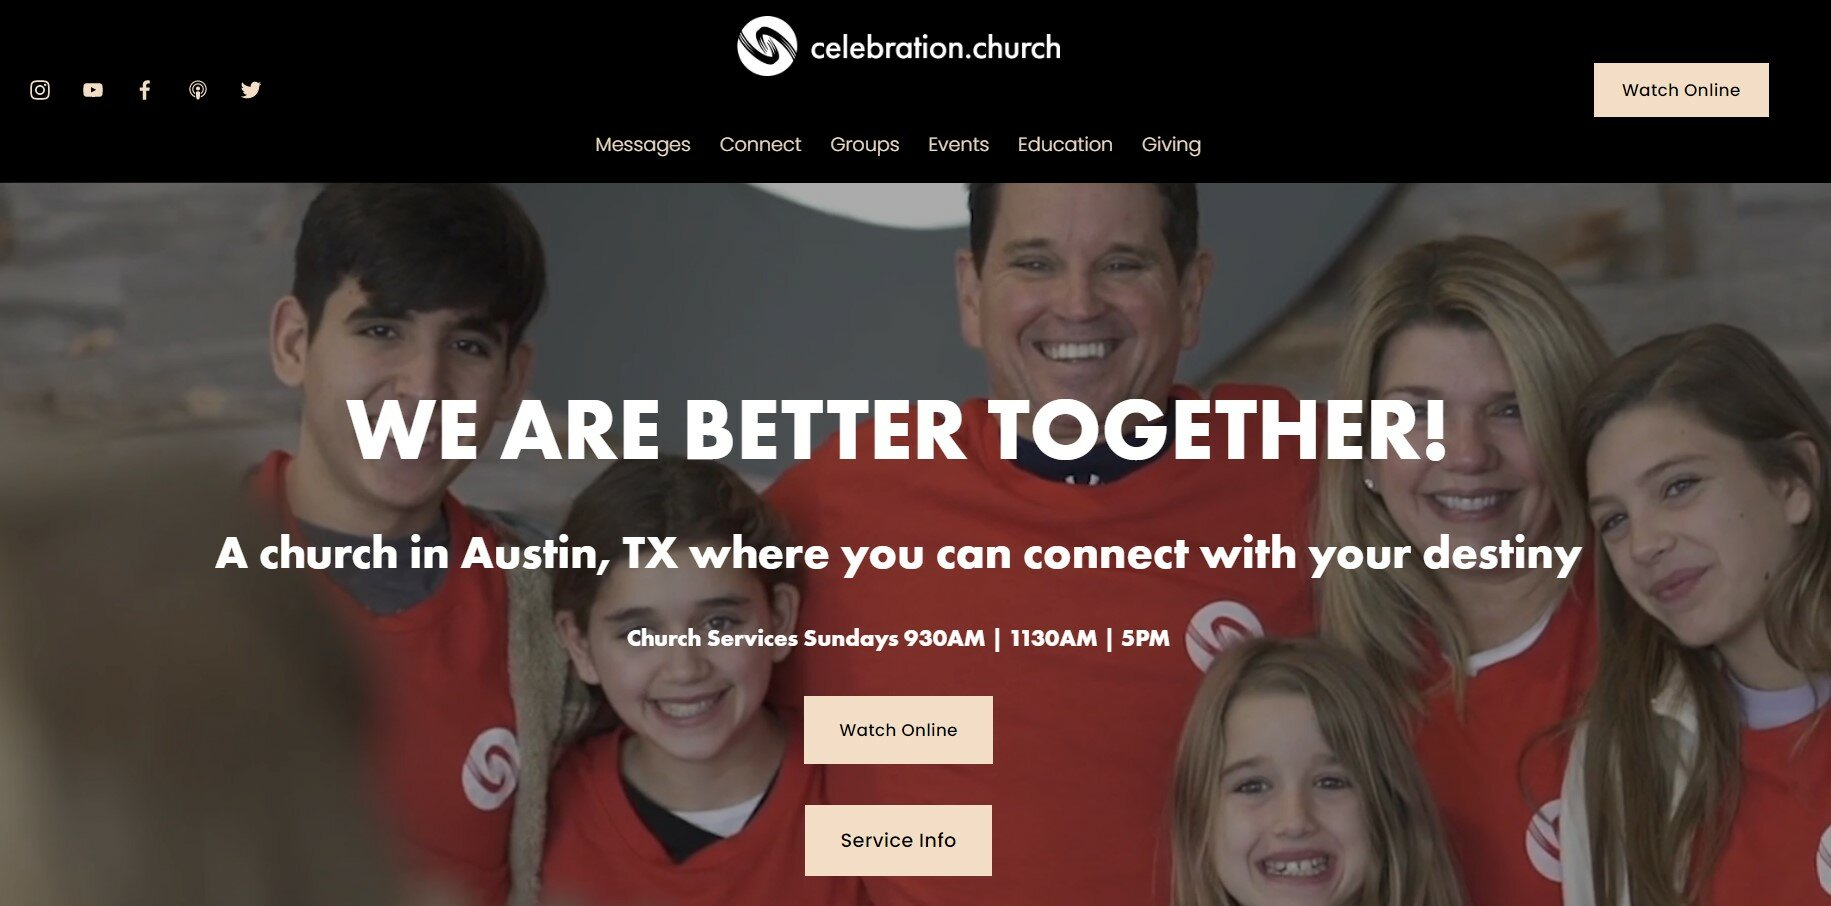 Celebration Church has one of our favorite church websites.